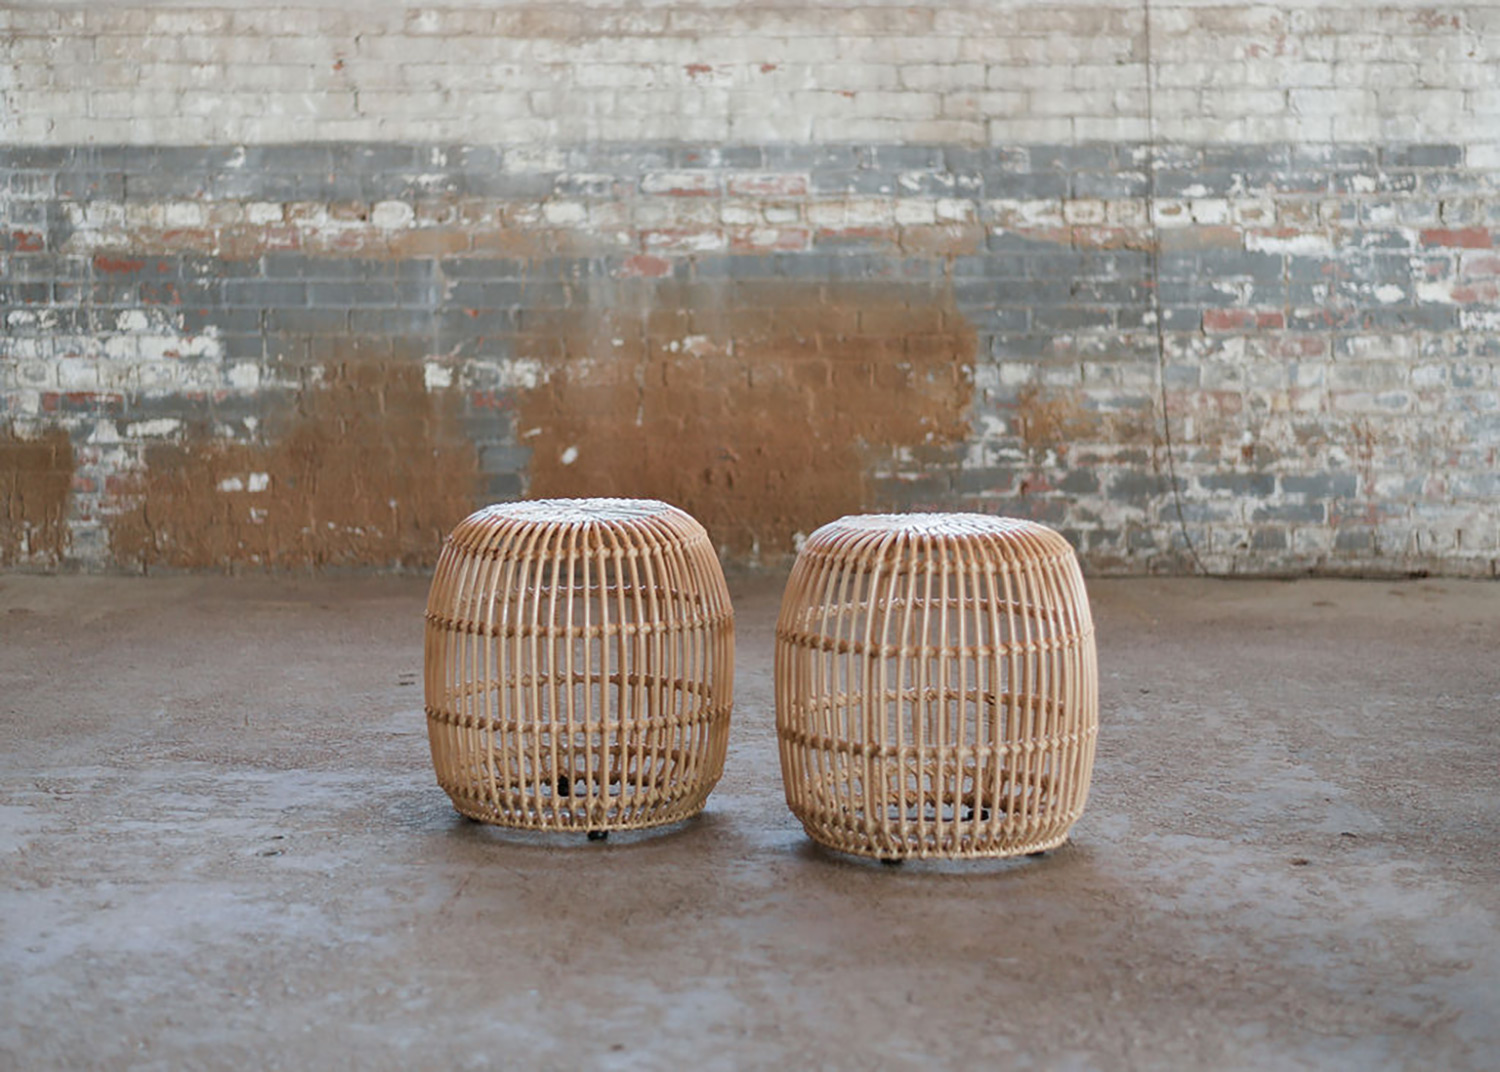 Cane End Tables in Boho Wicker